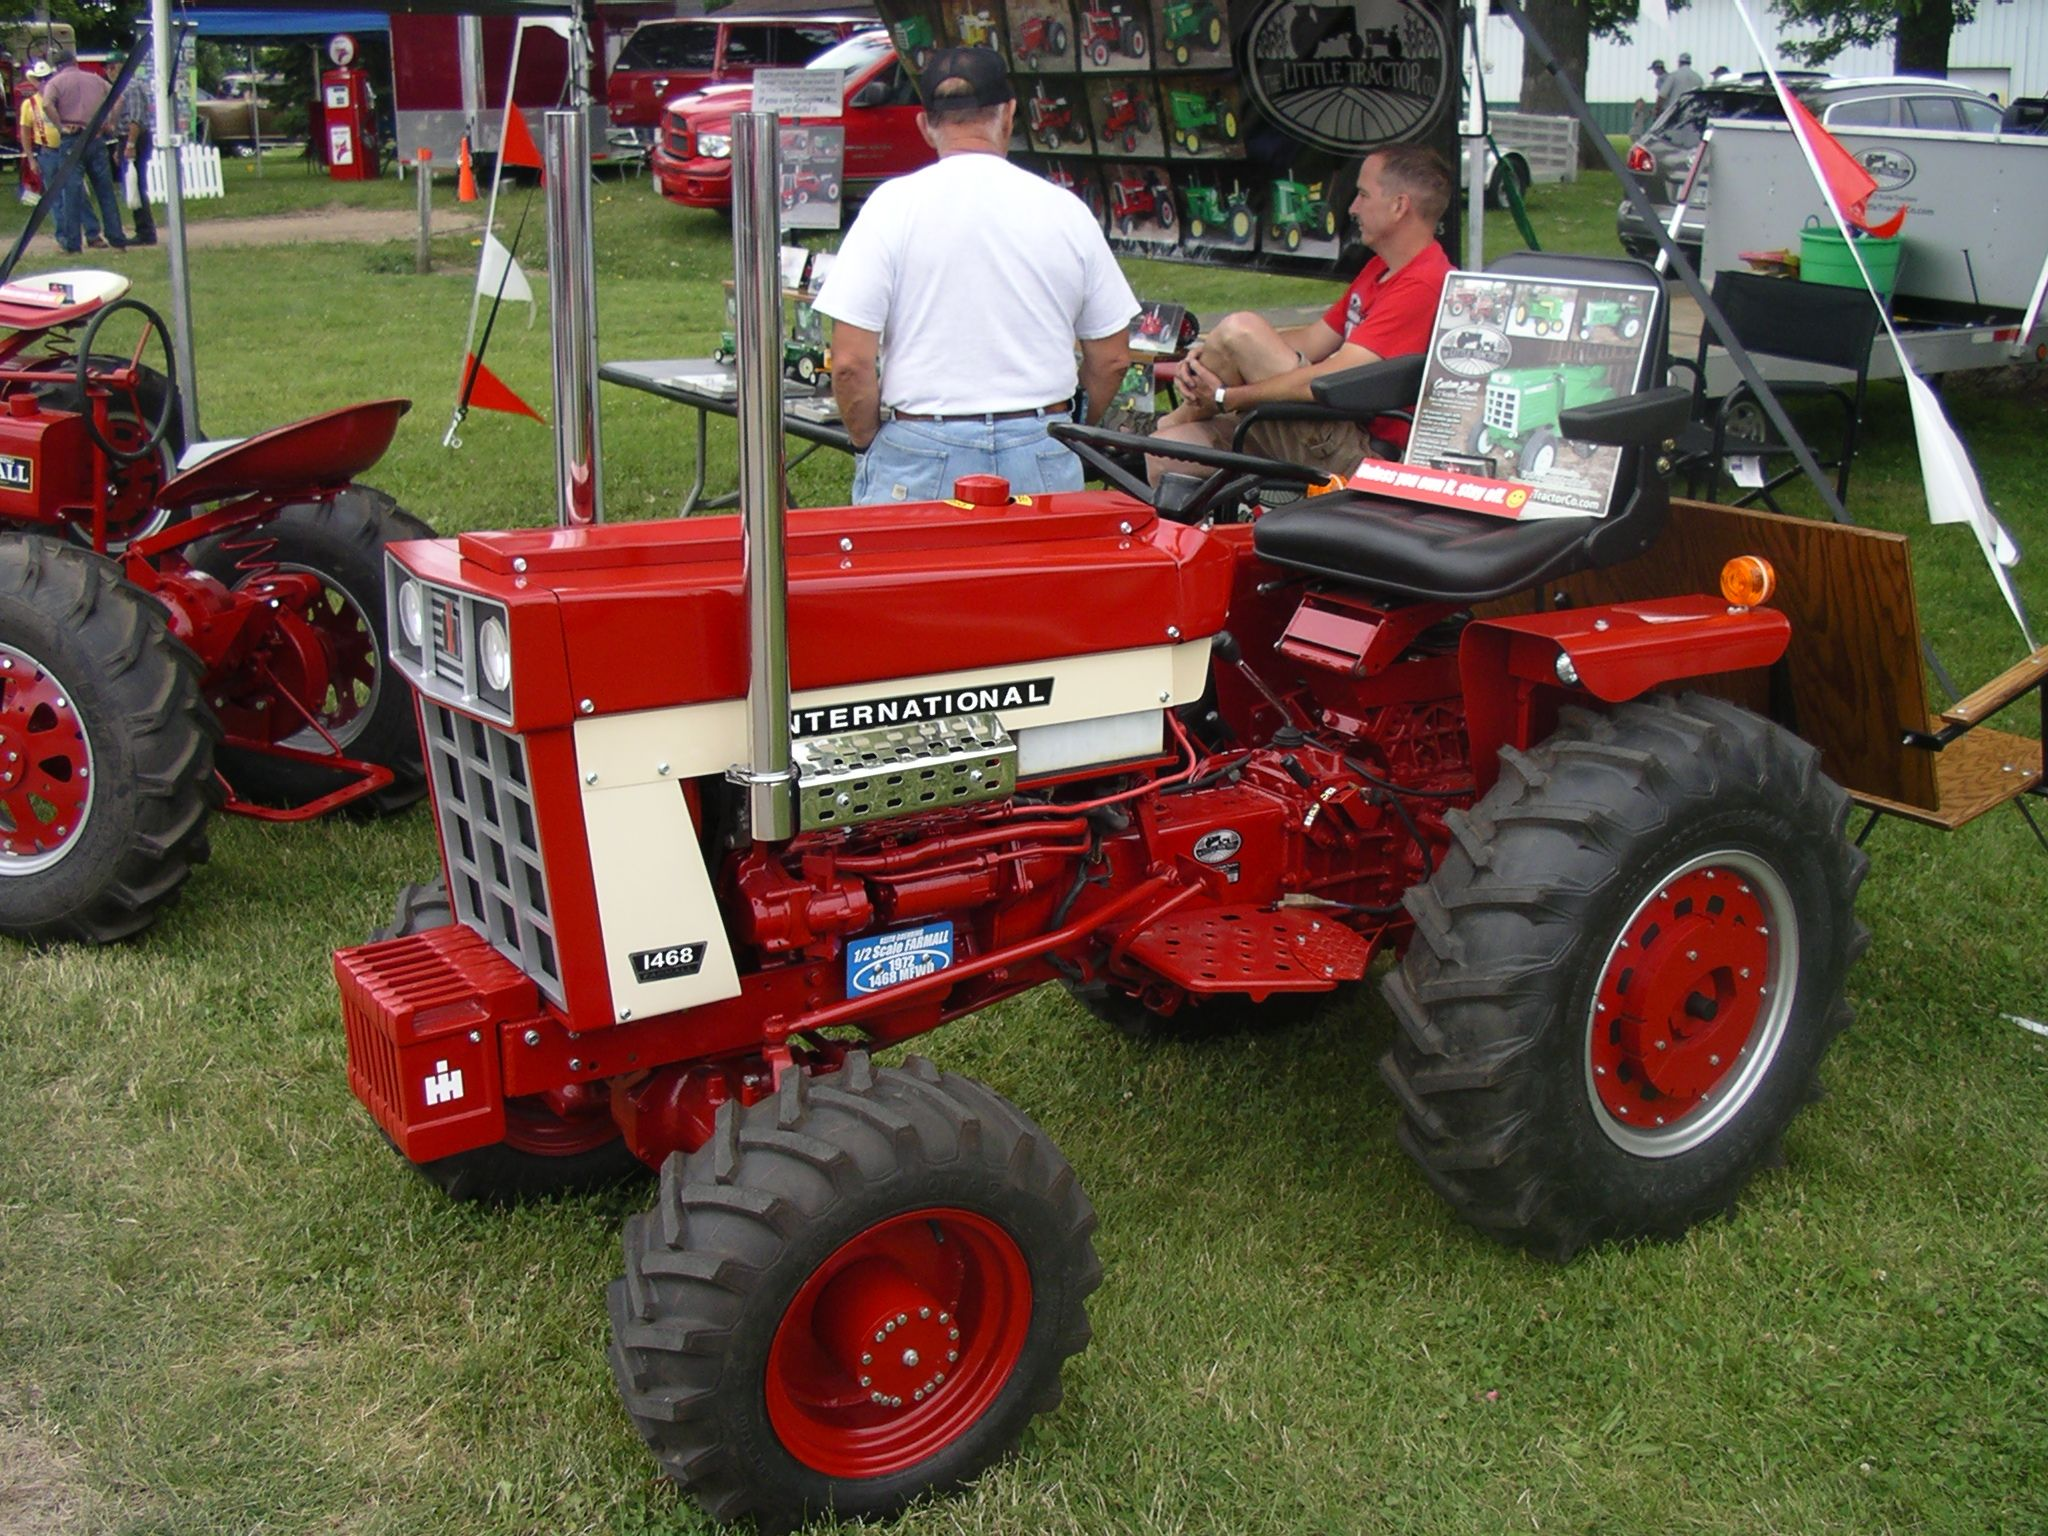 Case International Garden Tractors : Little tractor co ih red power round up